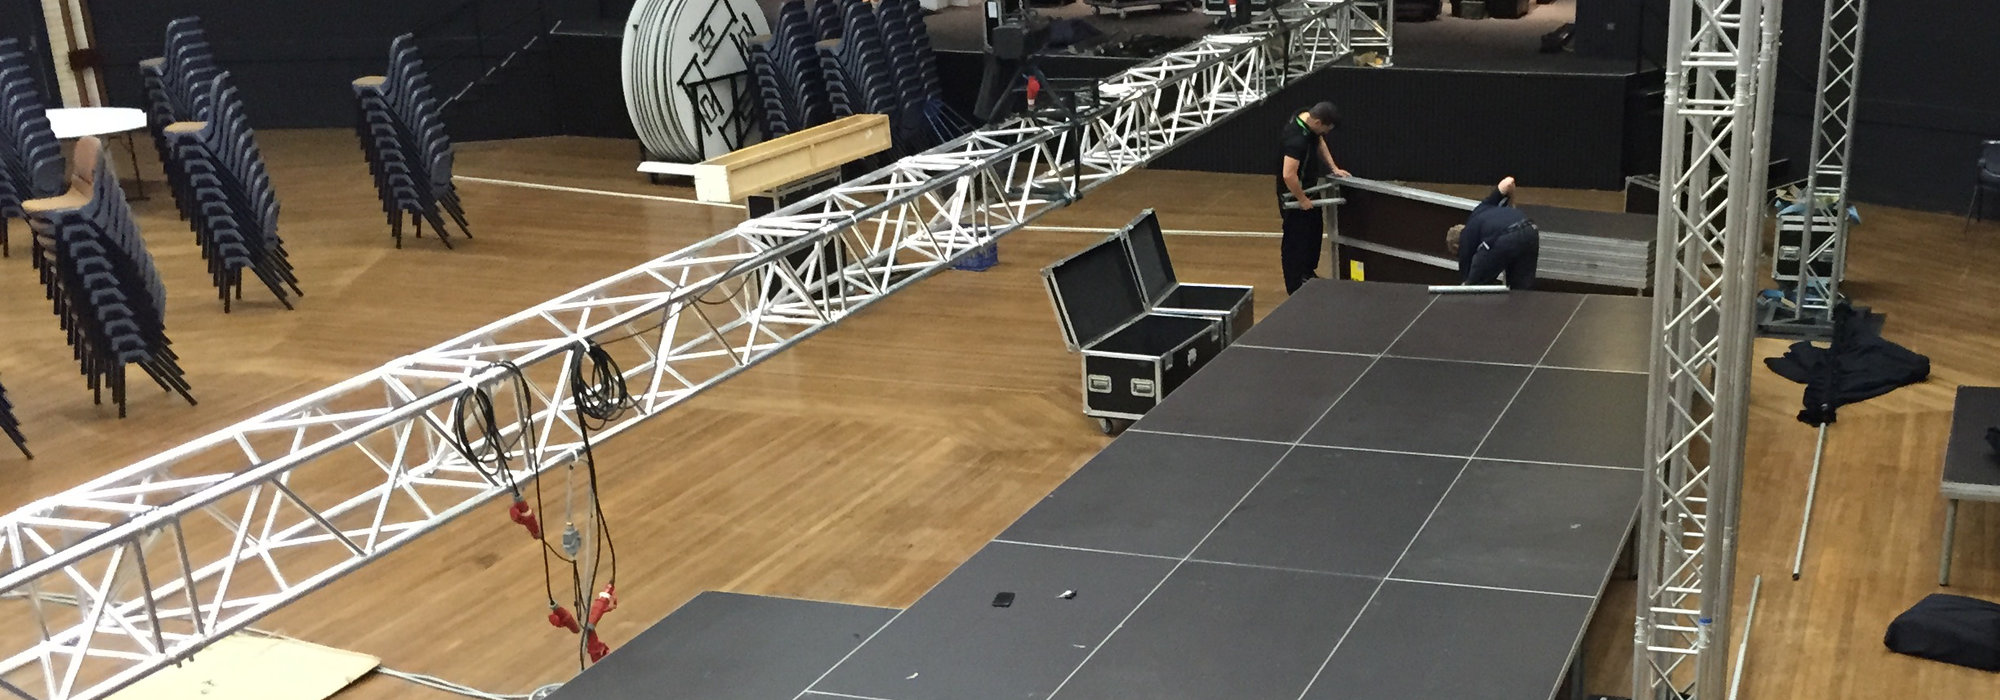 mobile-truss-stage